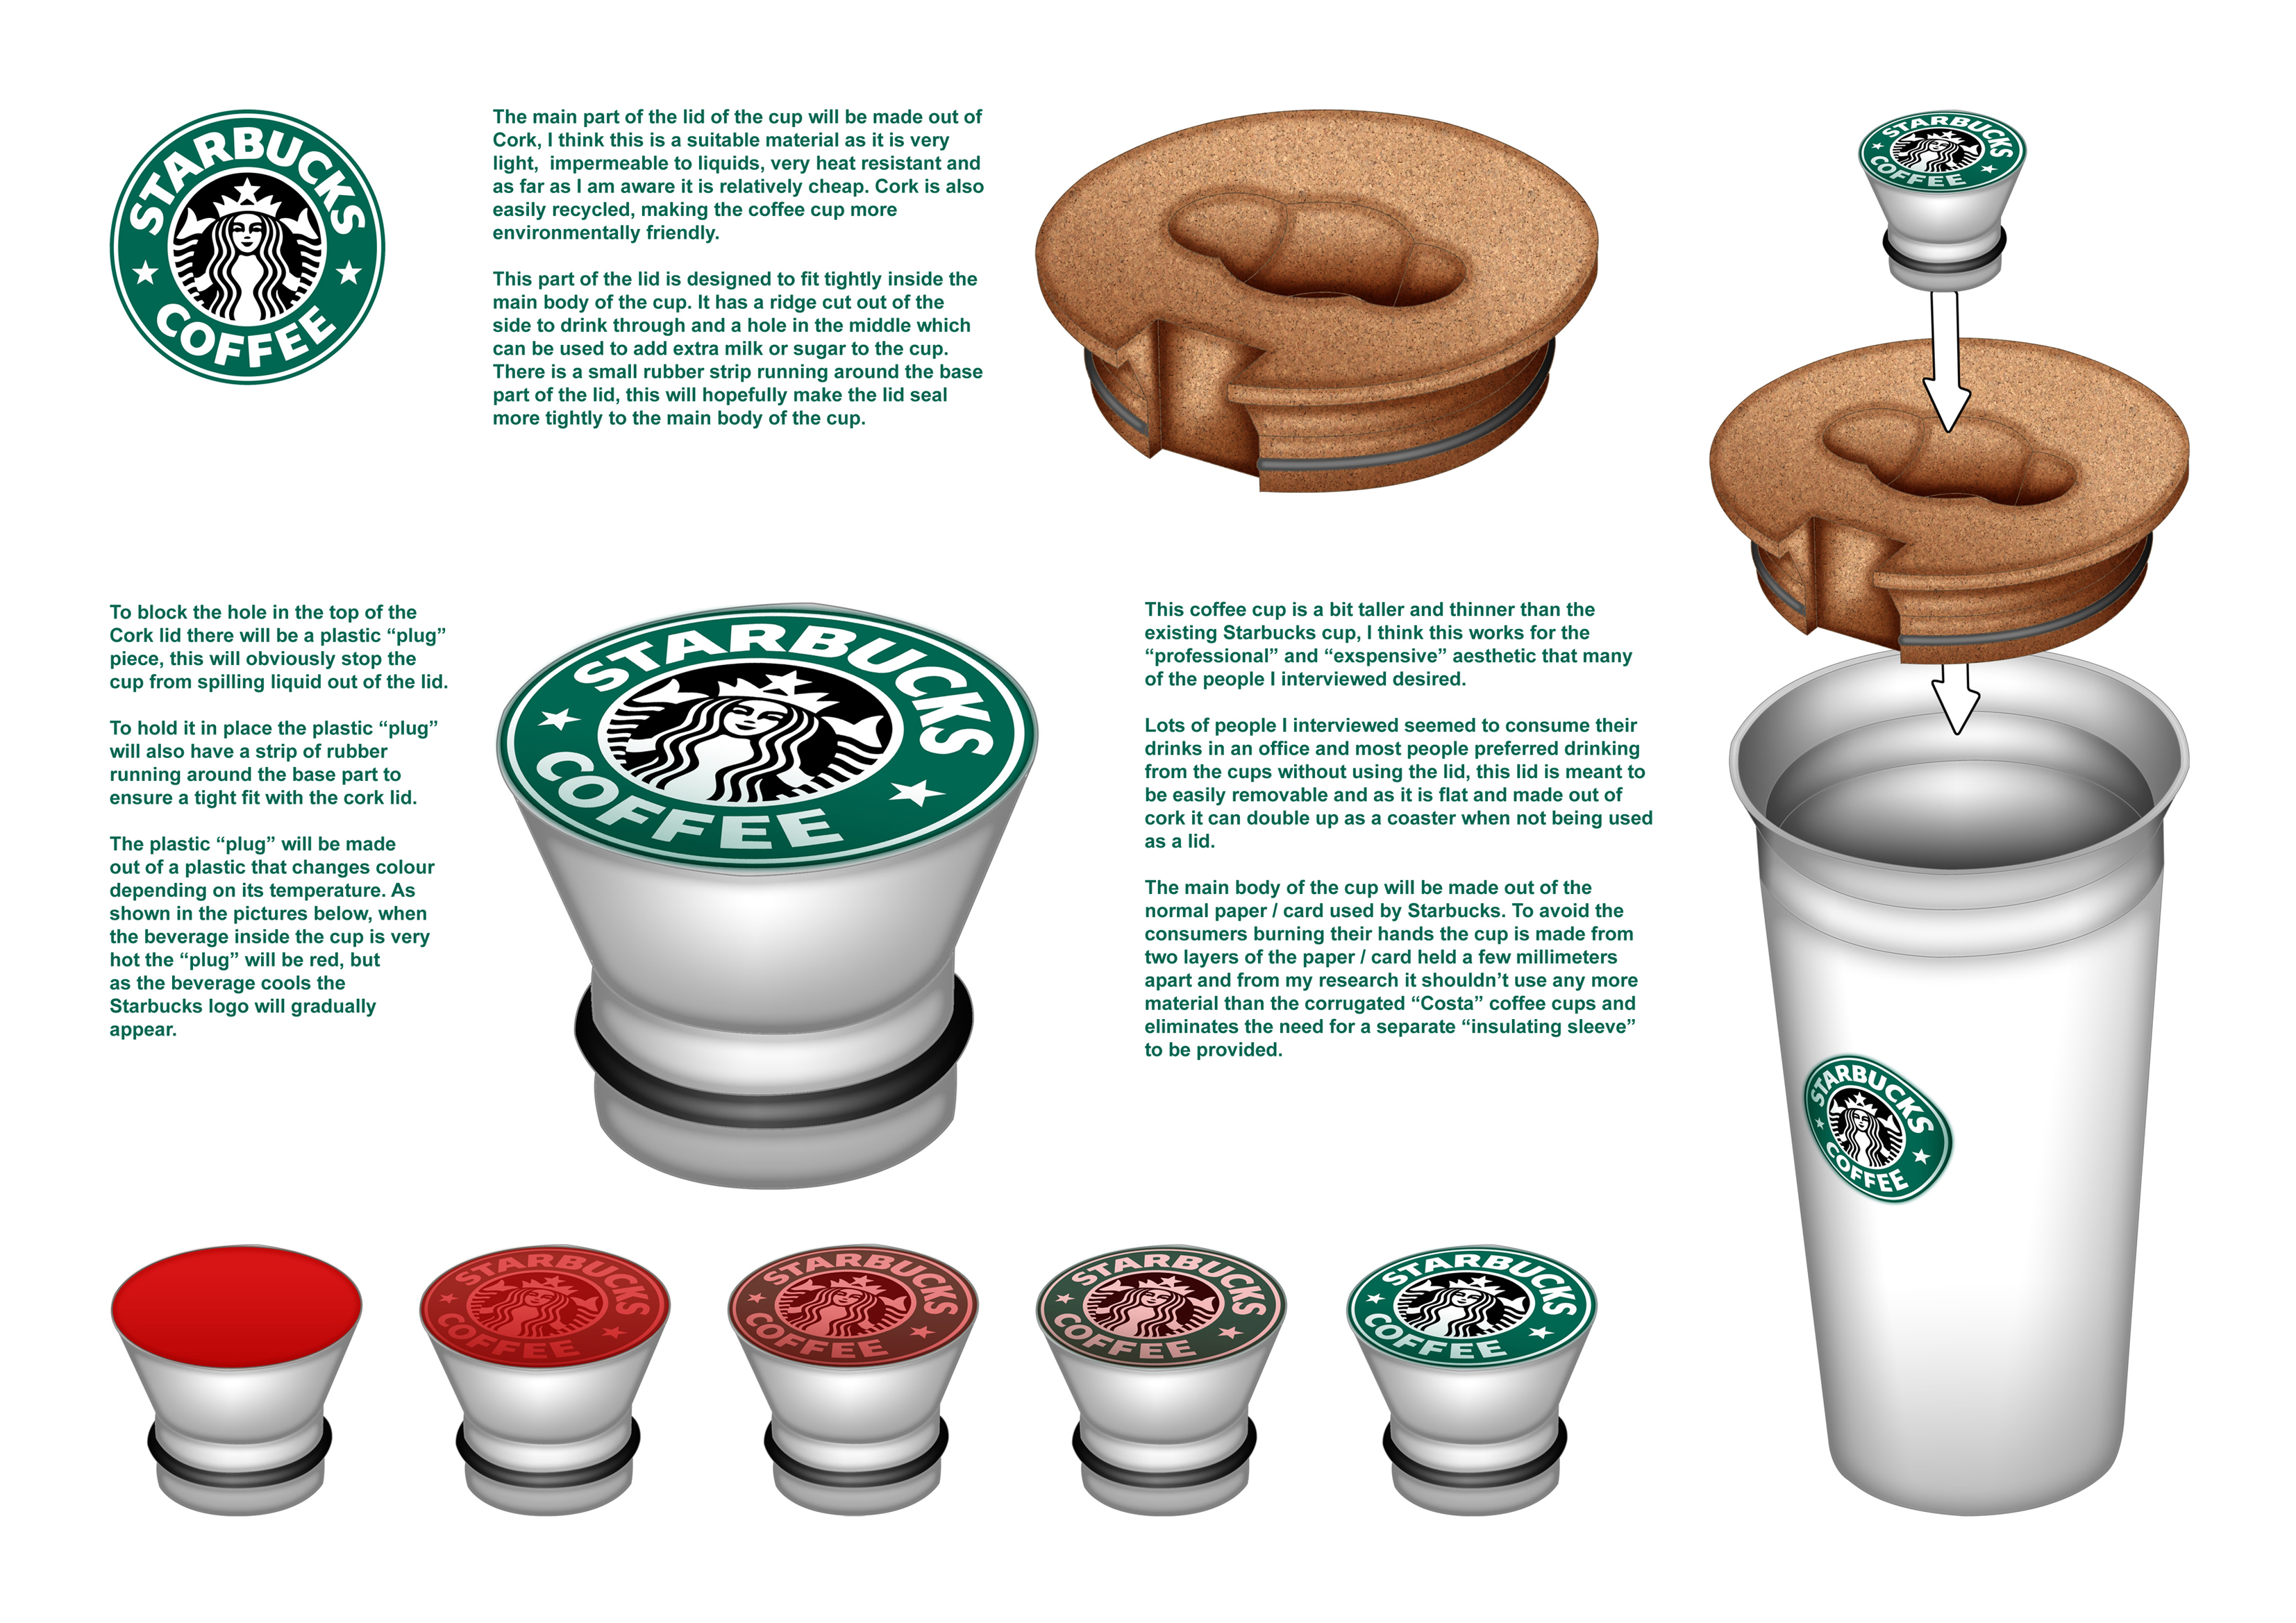 university work by thomas debnam at com starbucks coffee cup re design renderings